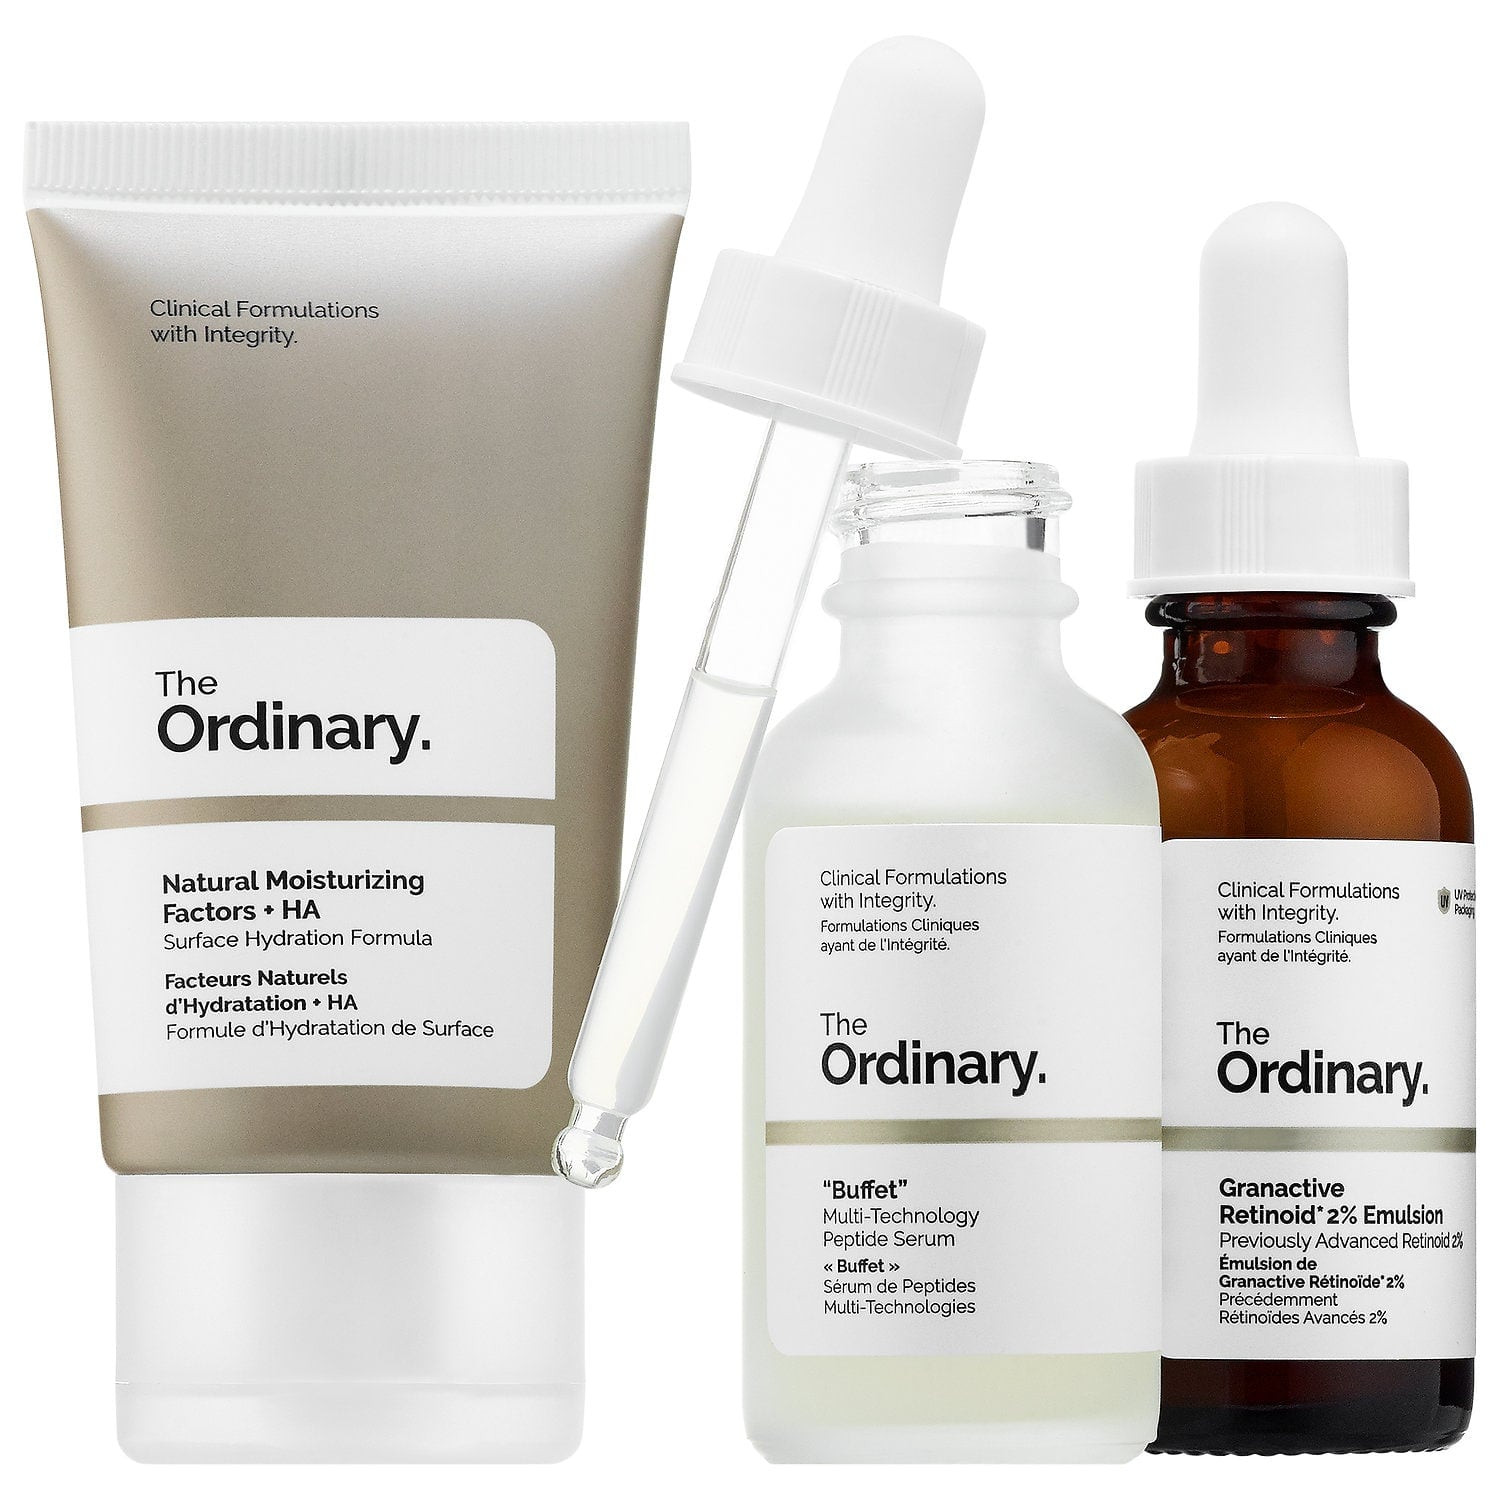 Top Rated Skincare Products From The Ordinary At Sephora Popsugar Beauty